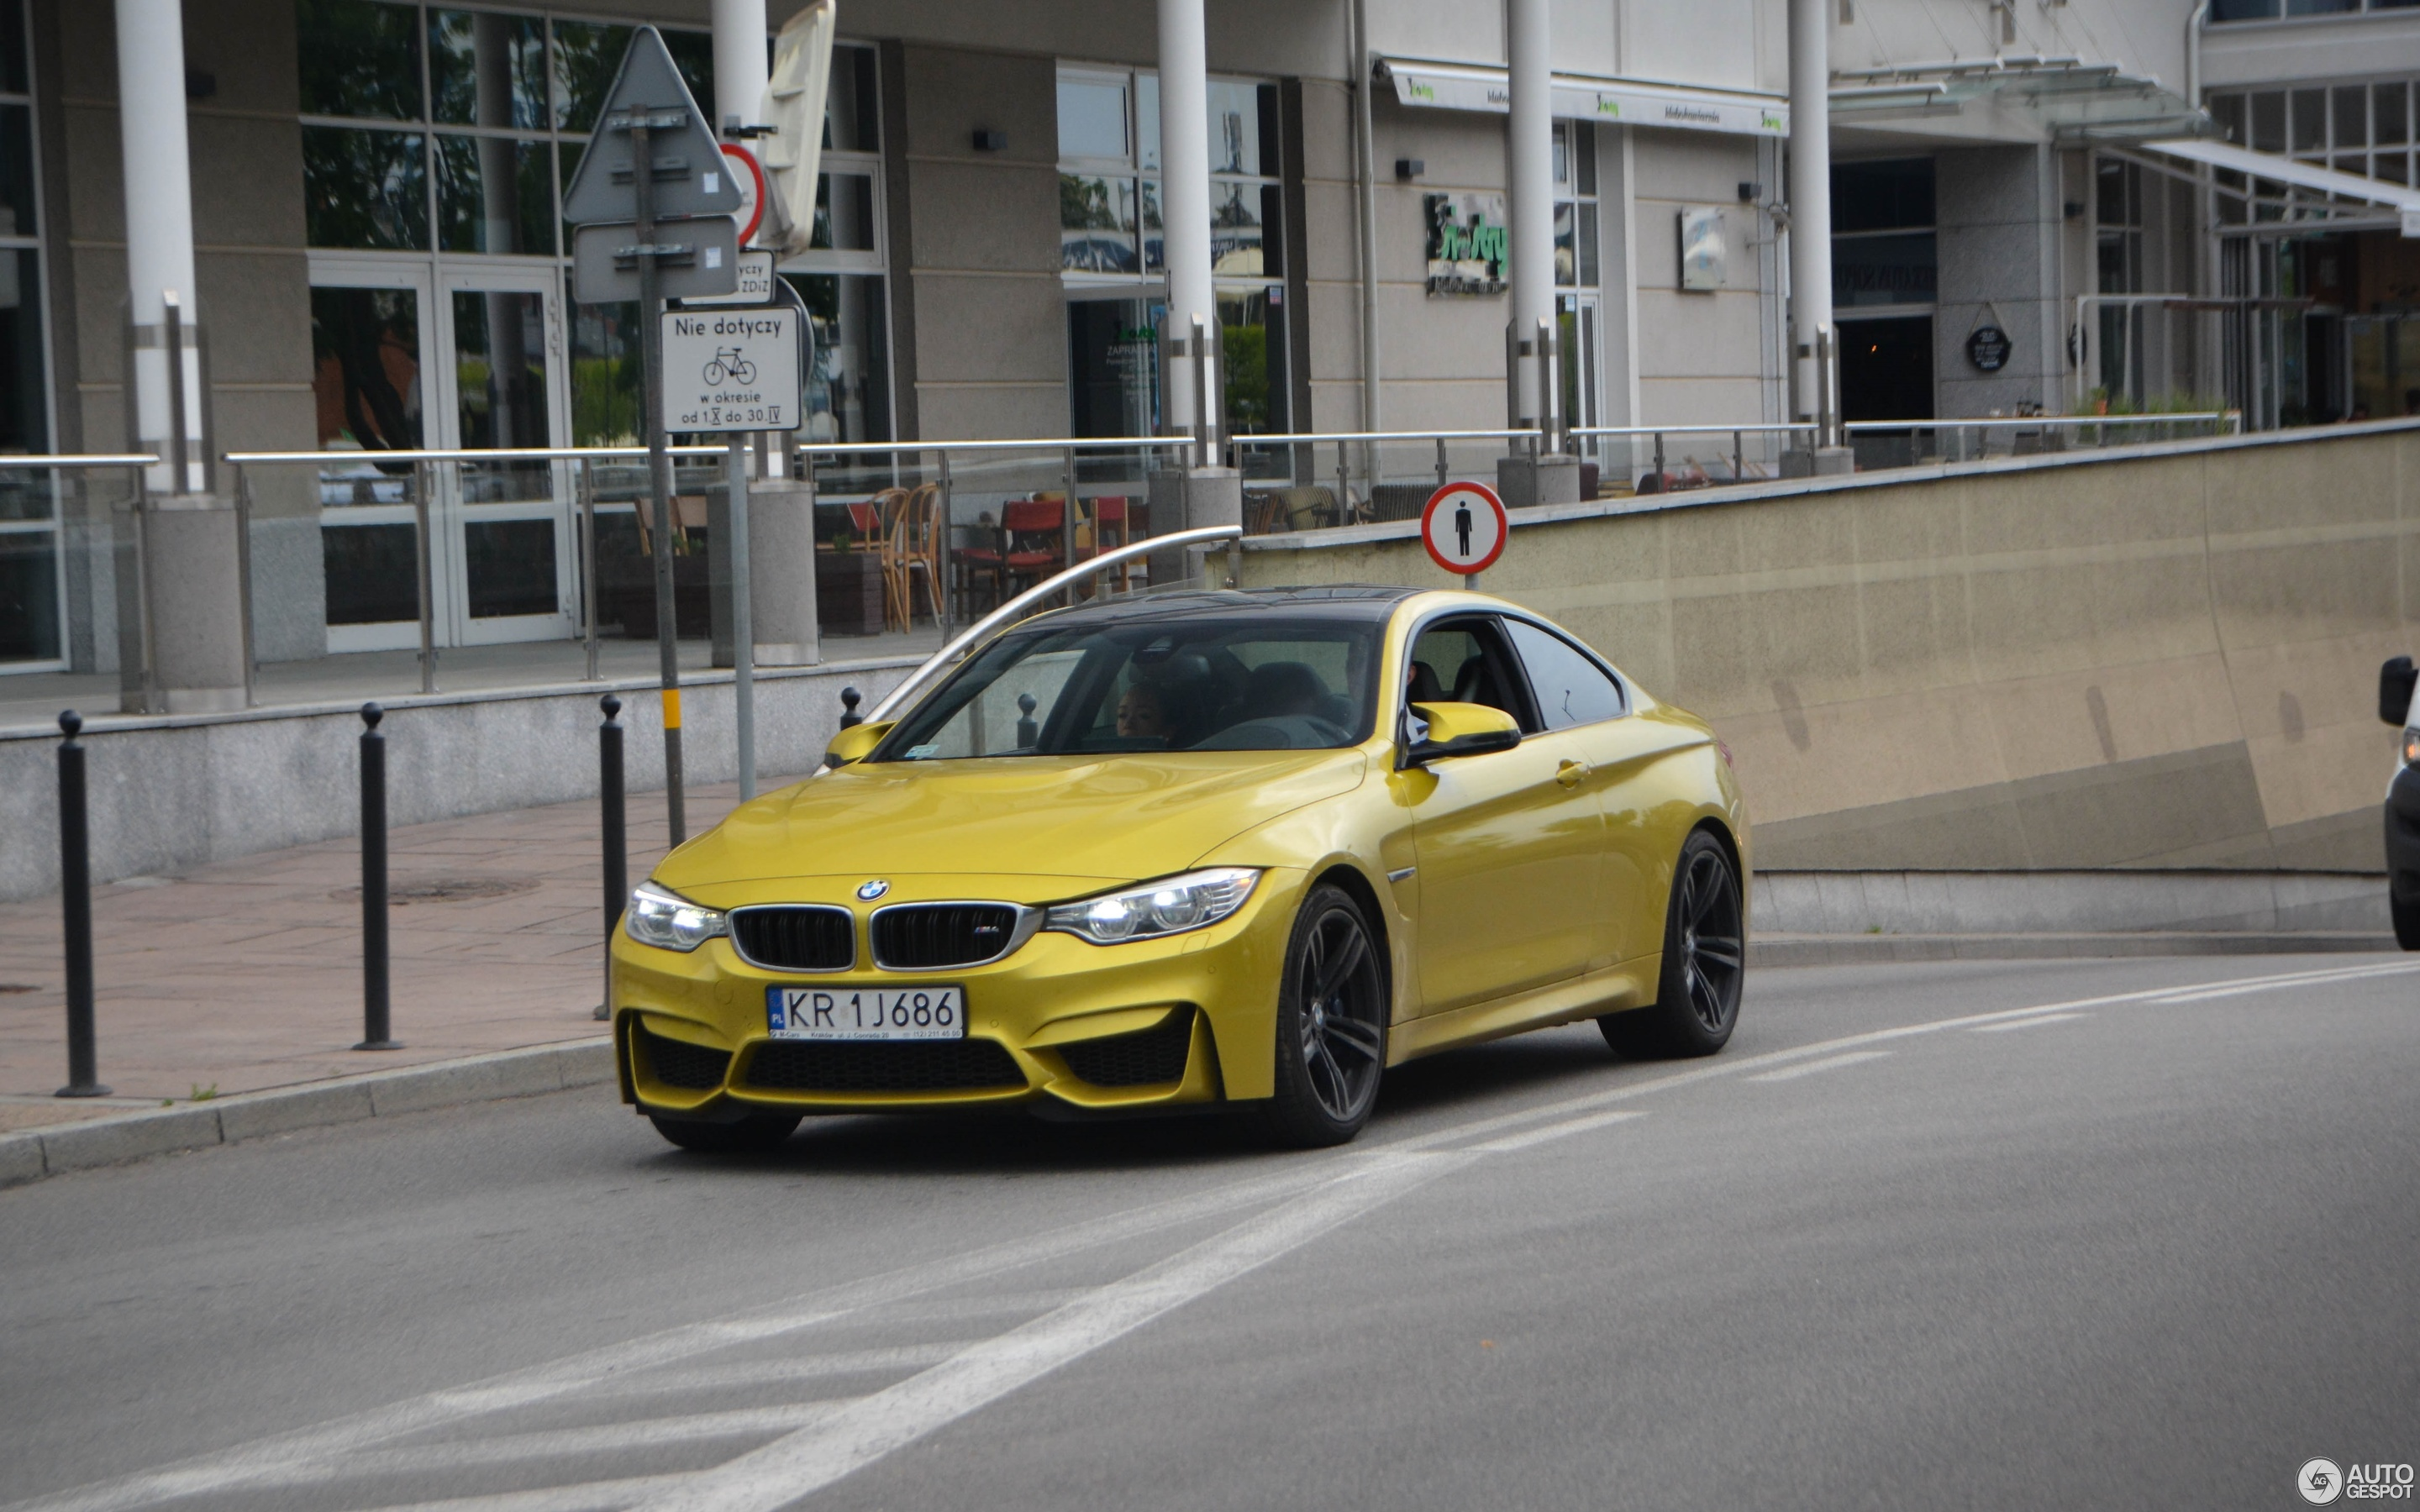 BMW M4 F82 Coupé 30 May 2016 Autogespot